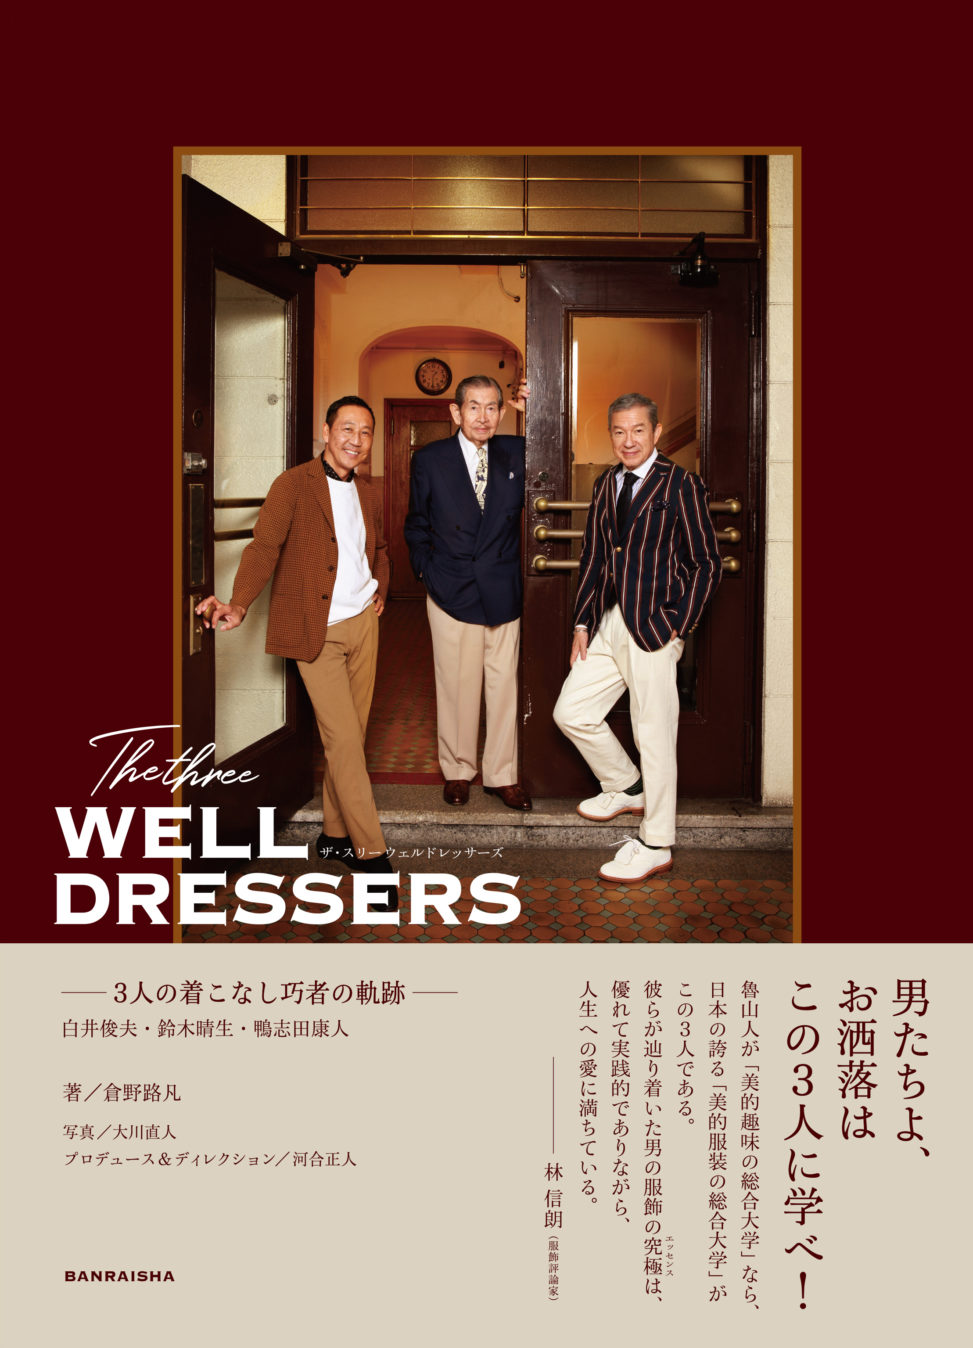 The three WELL DRESSERS